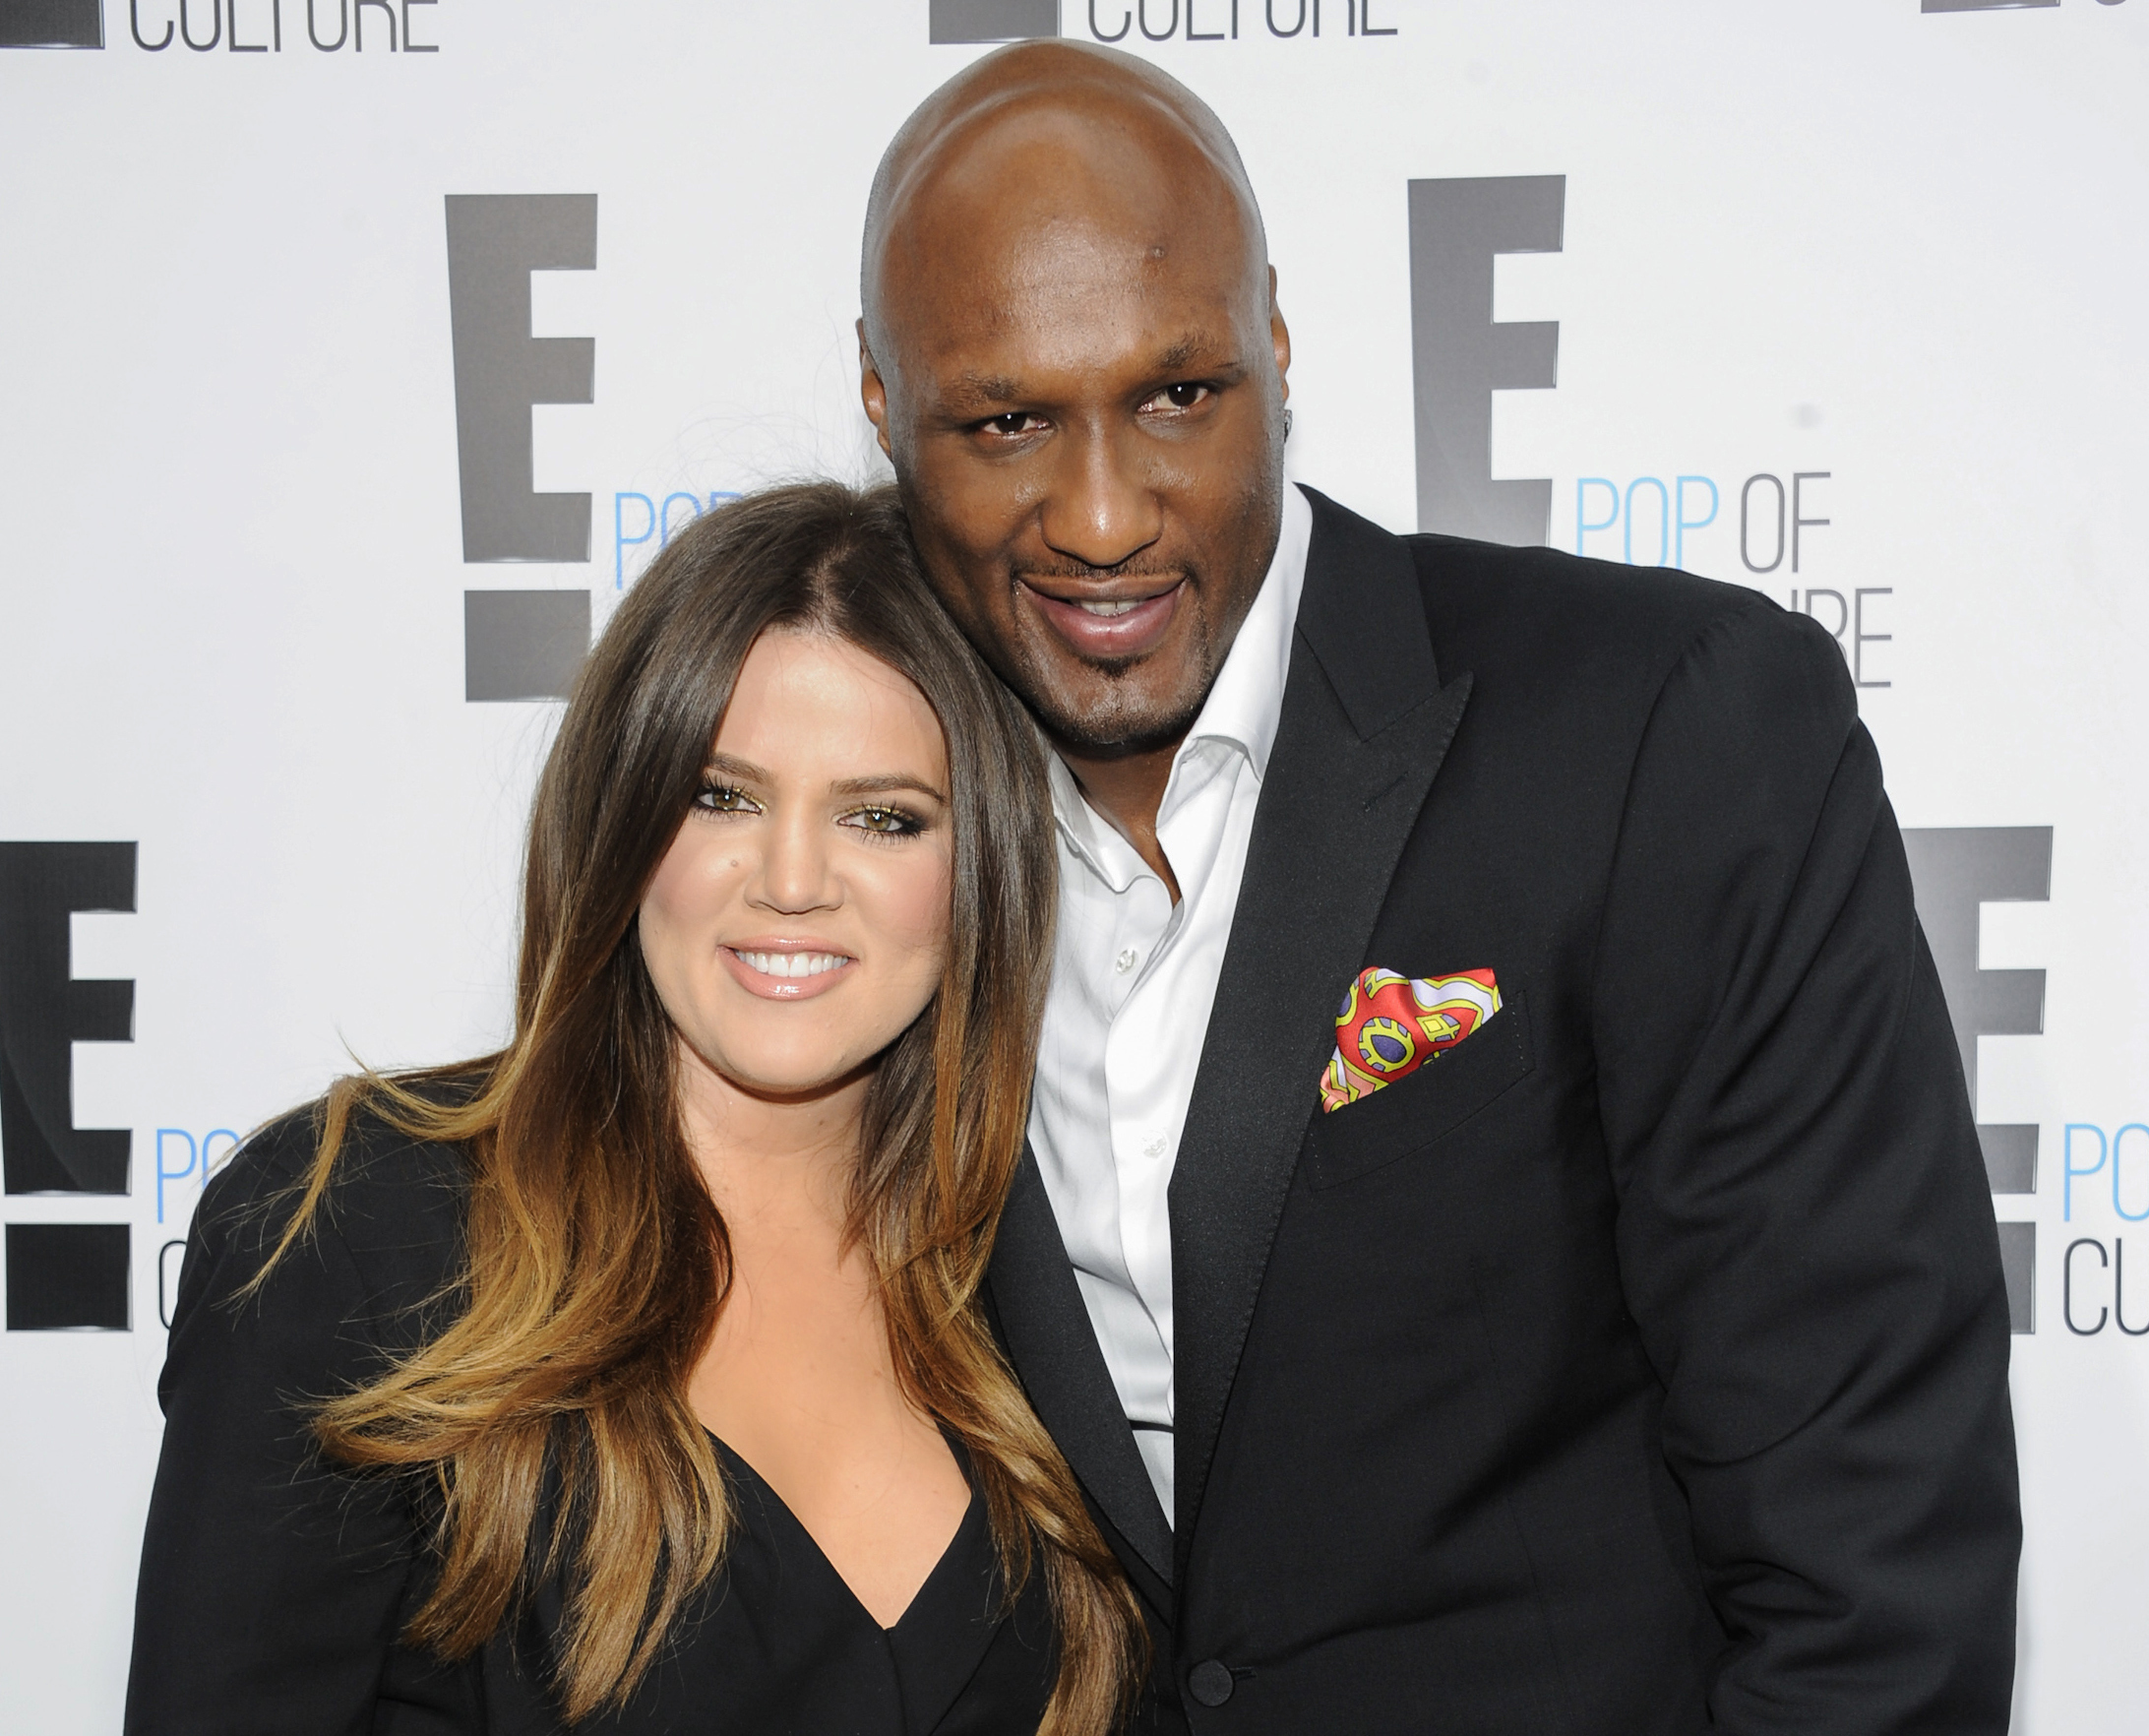 Lamar Odom wants Khloe Kardashian back